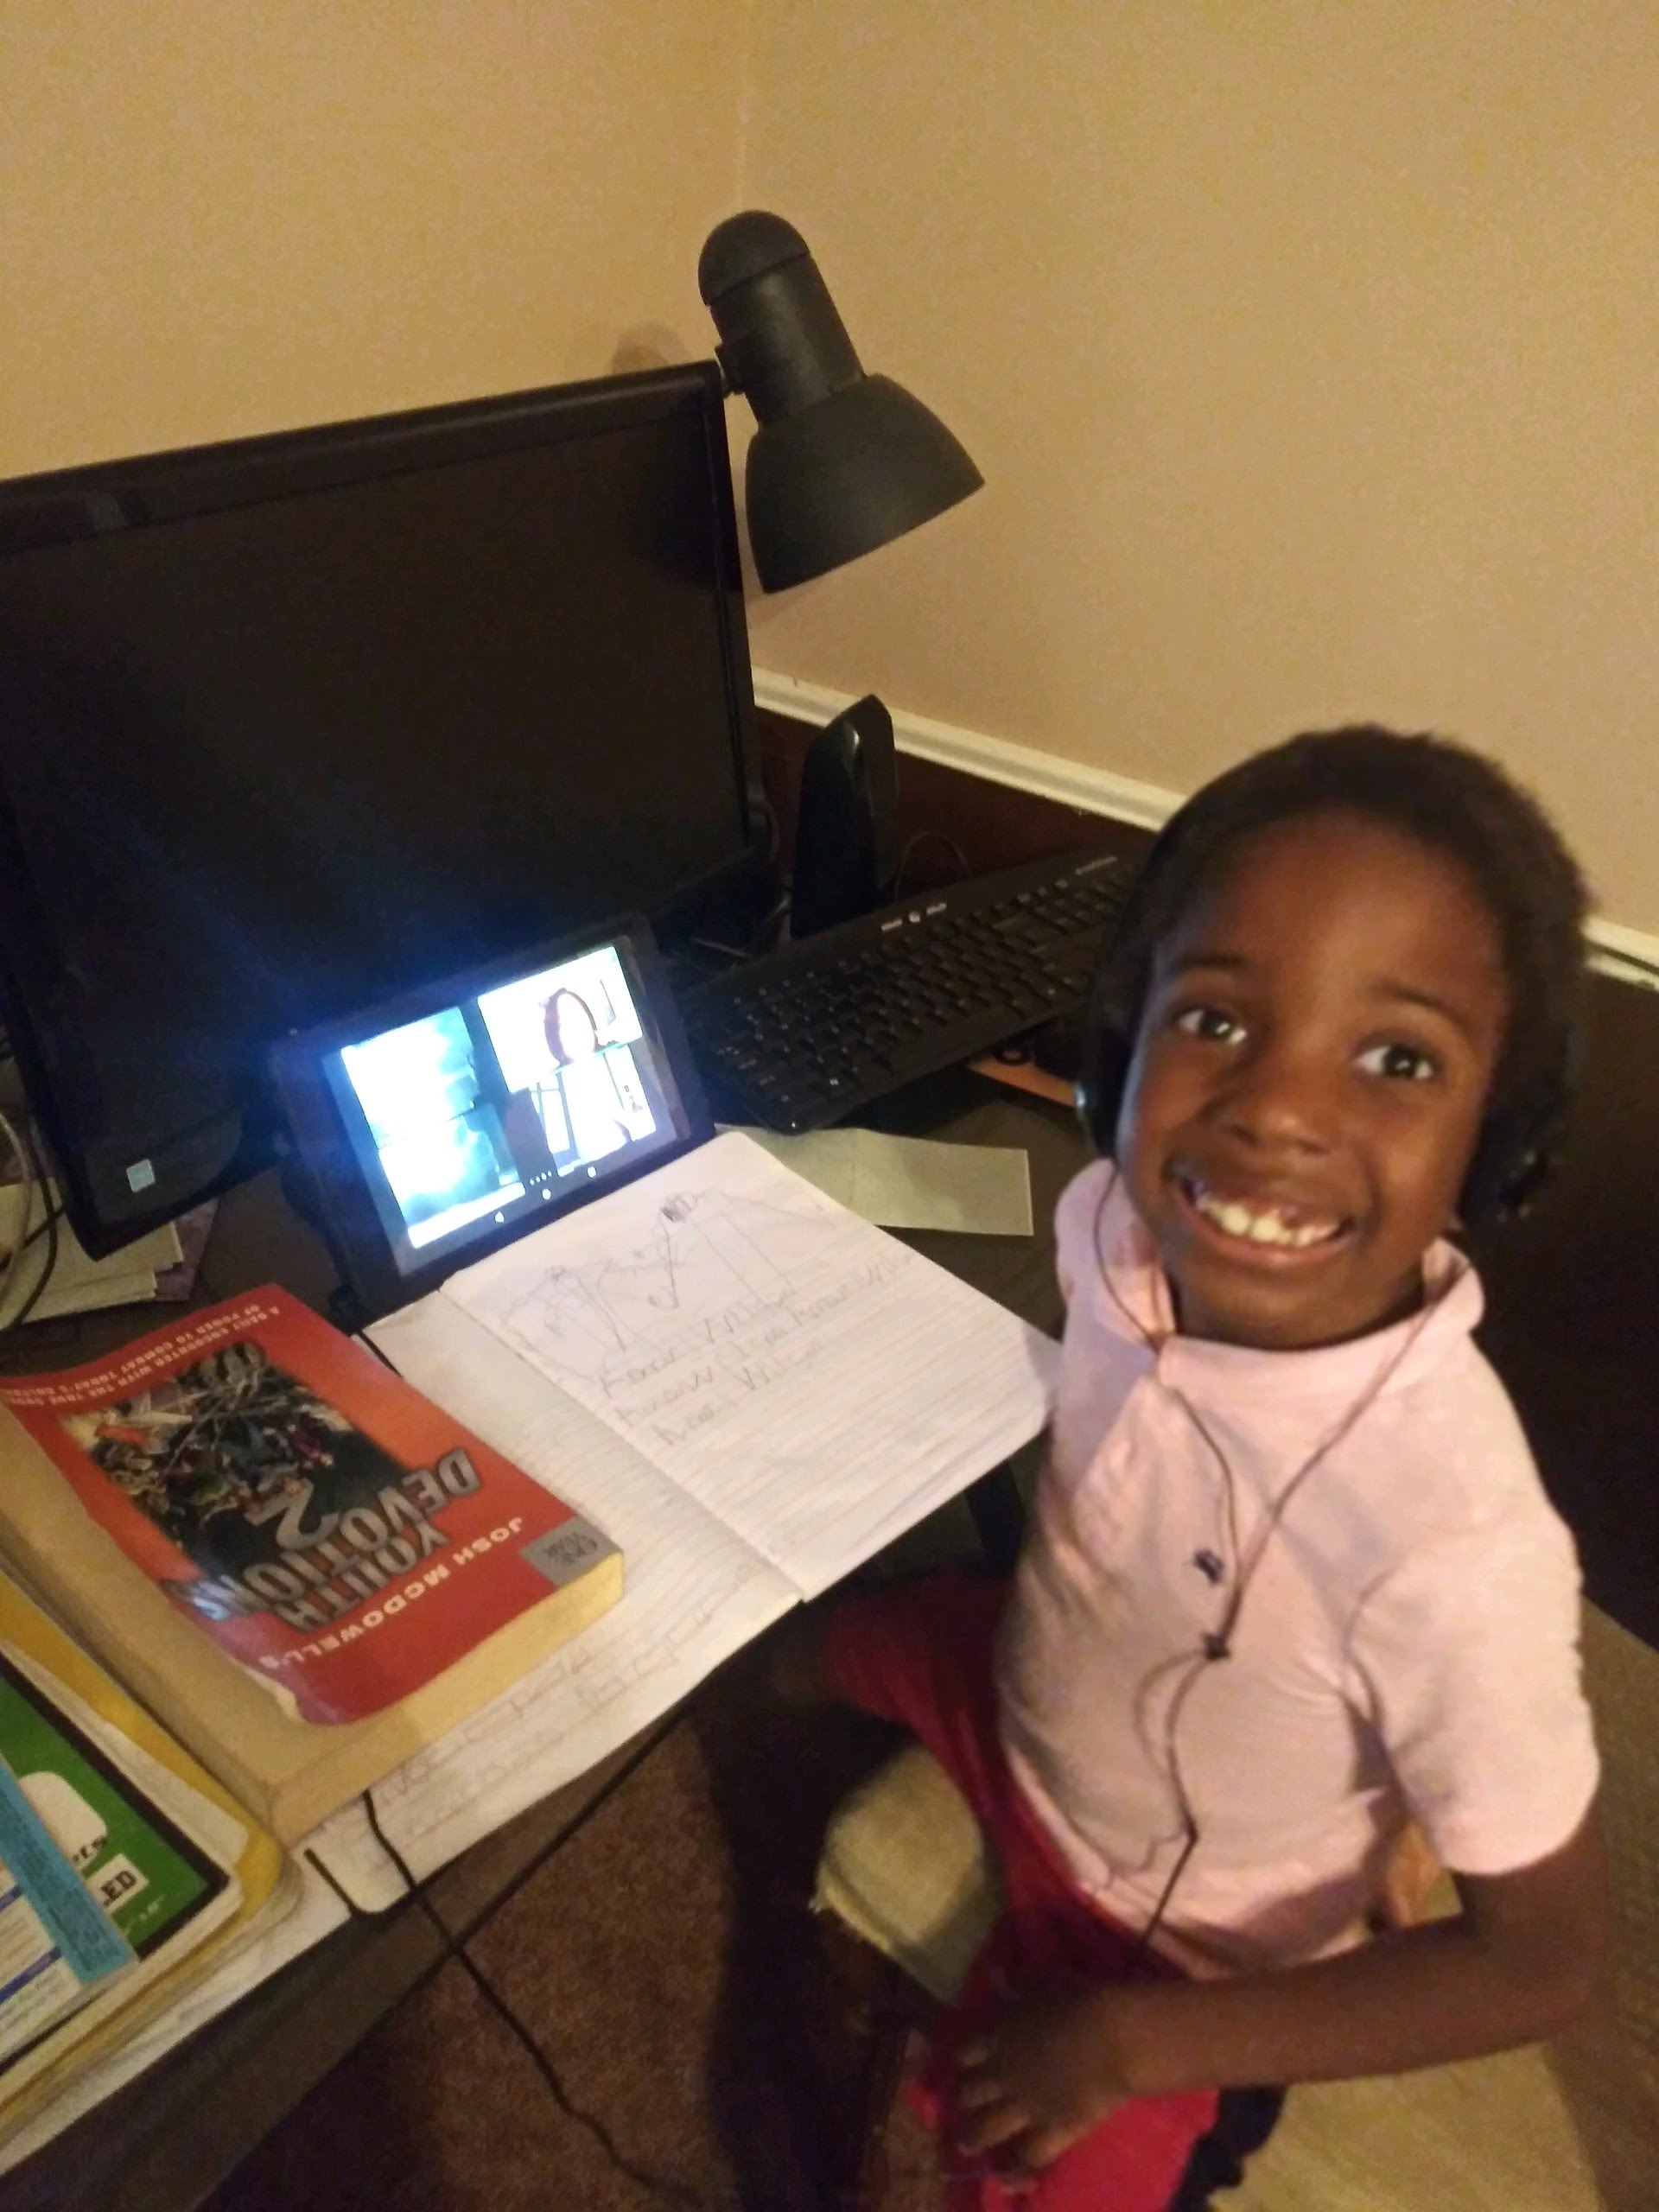 Six-year-old child practices writing his name with his teacher via video conference